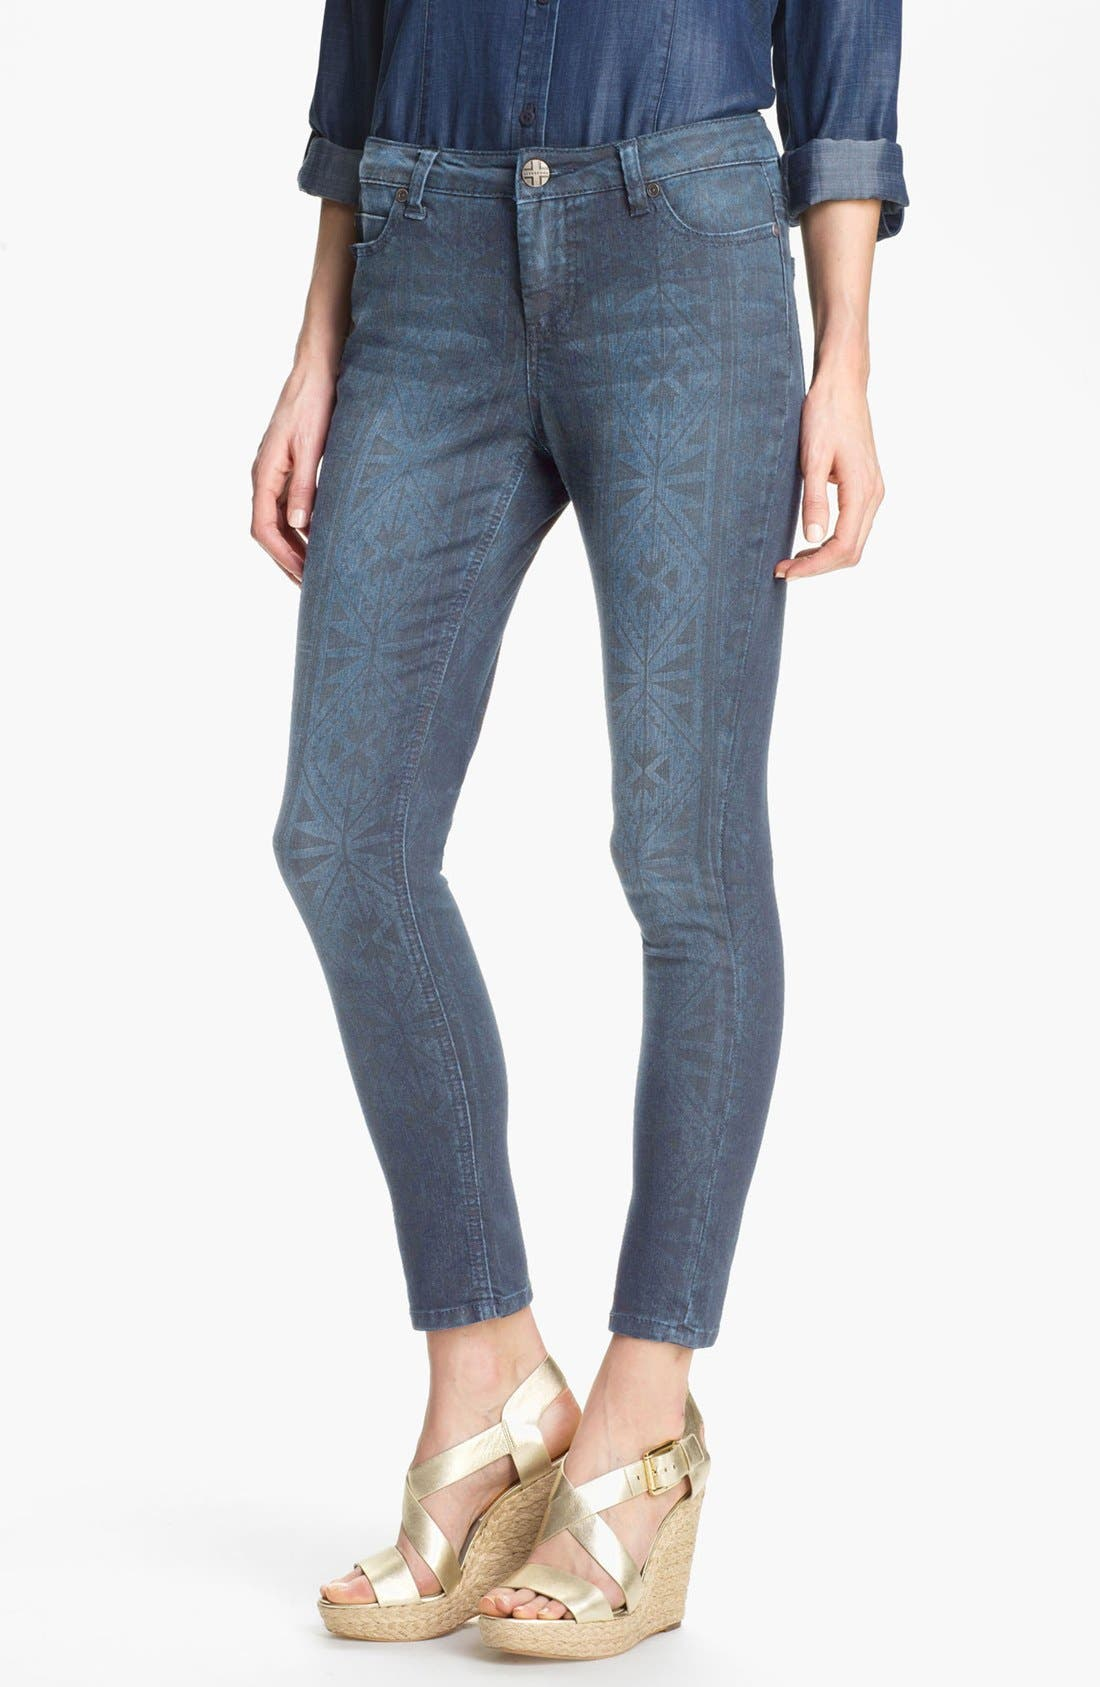 Alternate Image 1 Selected - Liverpool Jeans Company 'Abby' Print Skinny Ankle Jeans